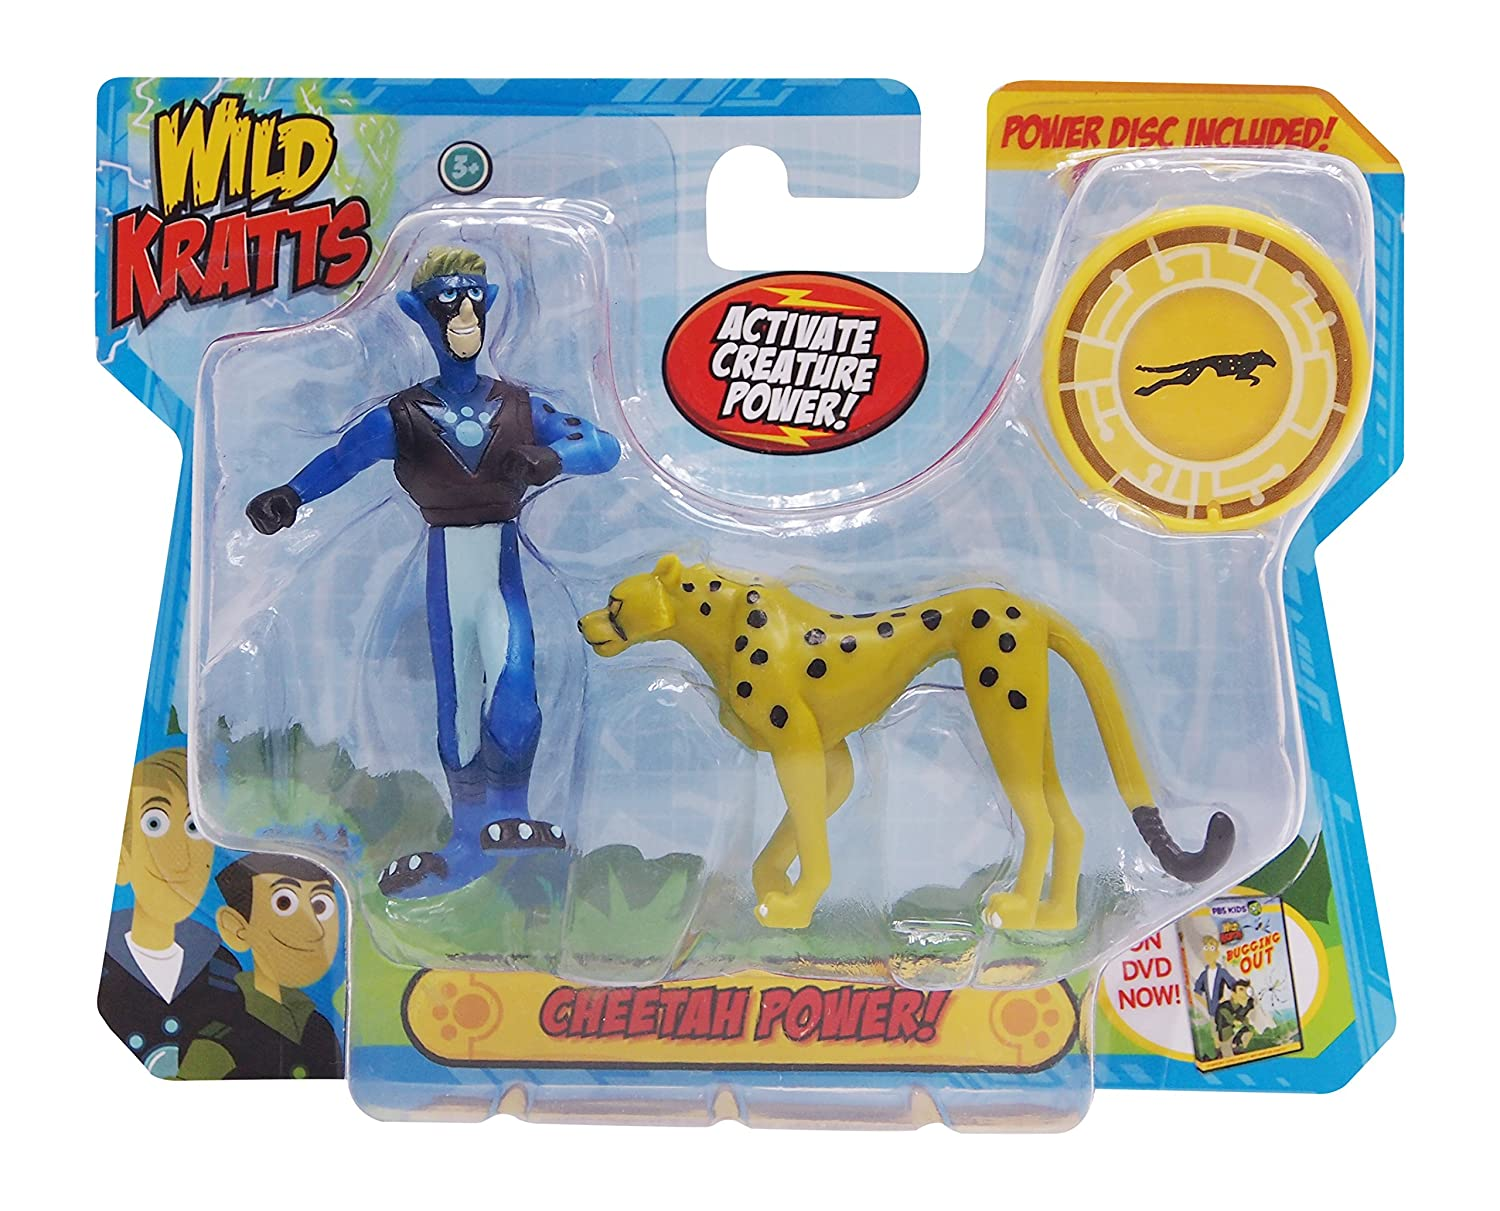 Domestic 2 Pack Creature Power Action Figure Set Cheetah Power Wicked Cool Toys 12005 Wild Kratts Toys